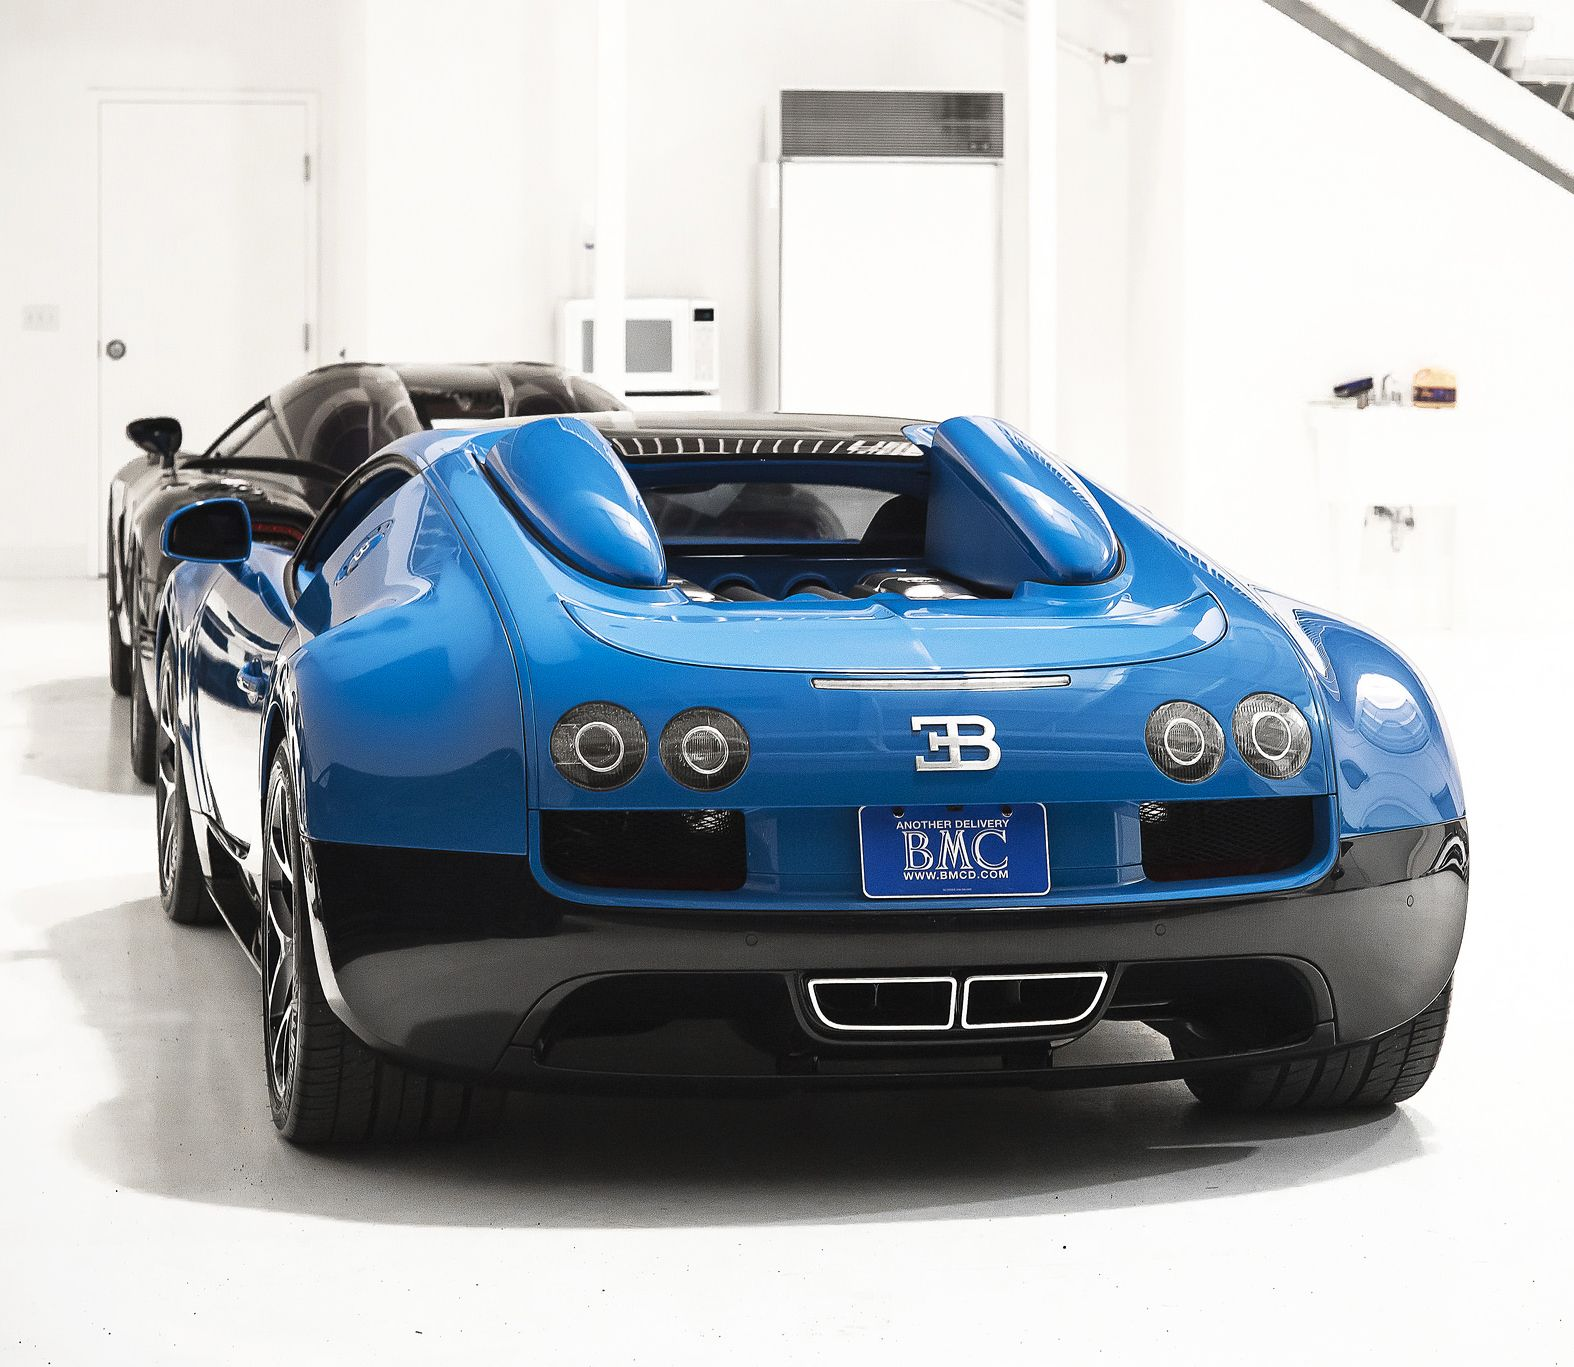 db3811d4b94e439316576acd4d4360bb Cool Bugatti Veyron Price In Uae 2015 Cars Trend